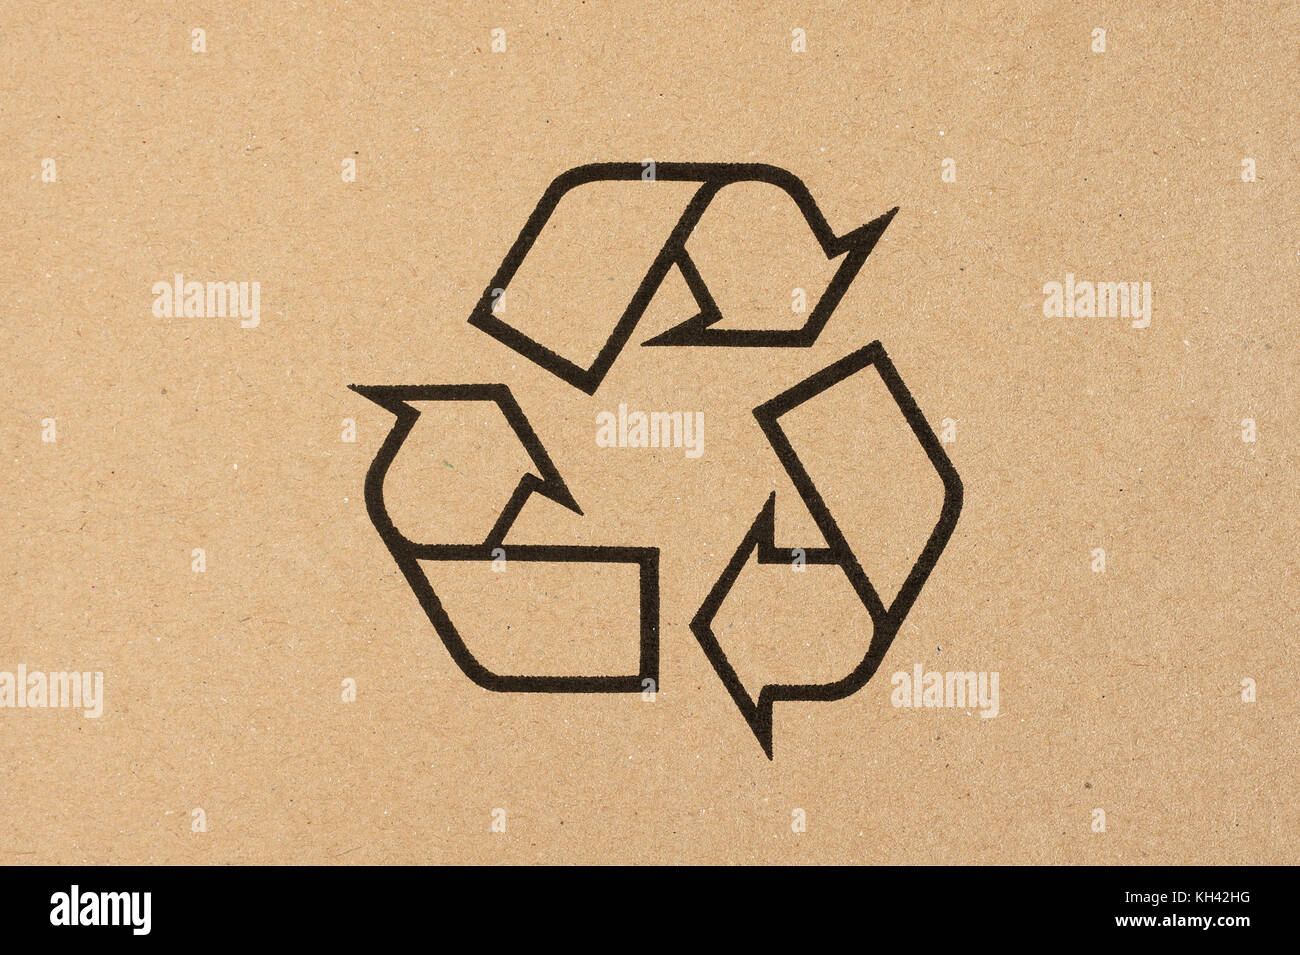 Recycling symbol for cardboard stock photos recycling symbol for recycling symbol for cardboard stock image biocorpaavc